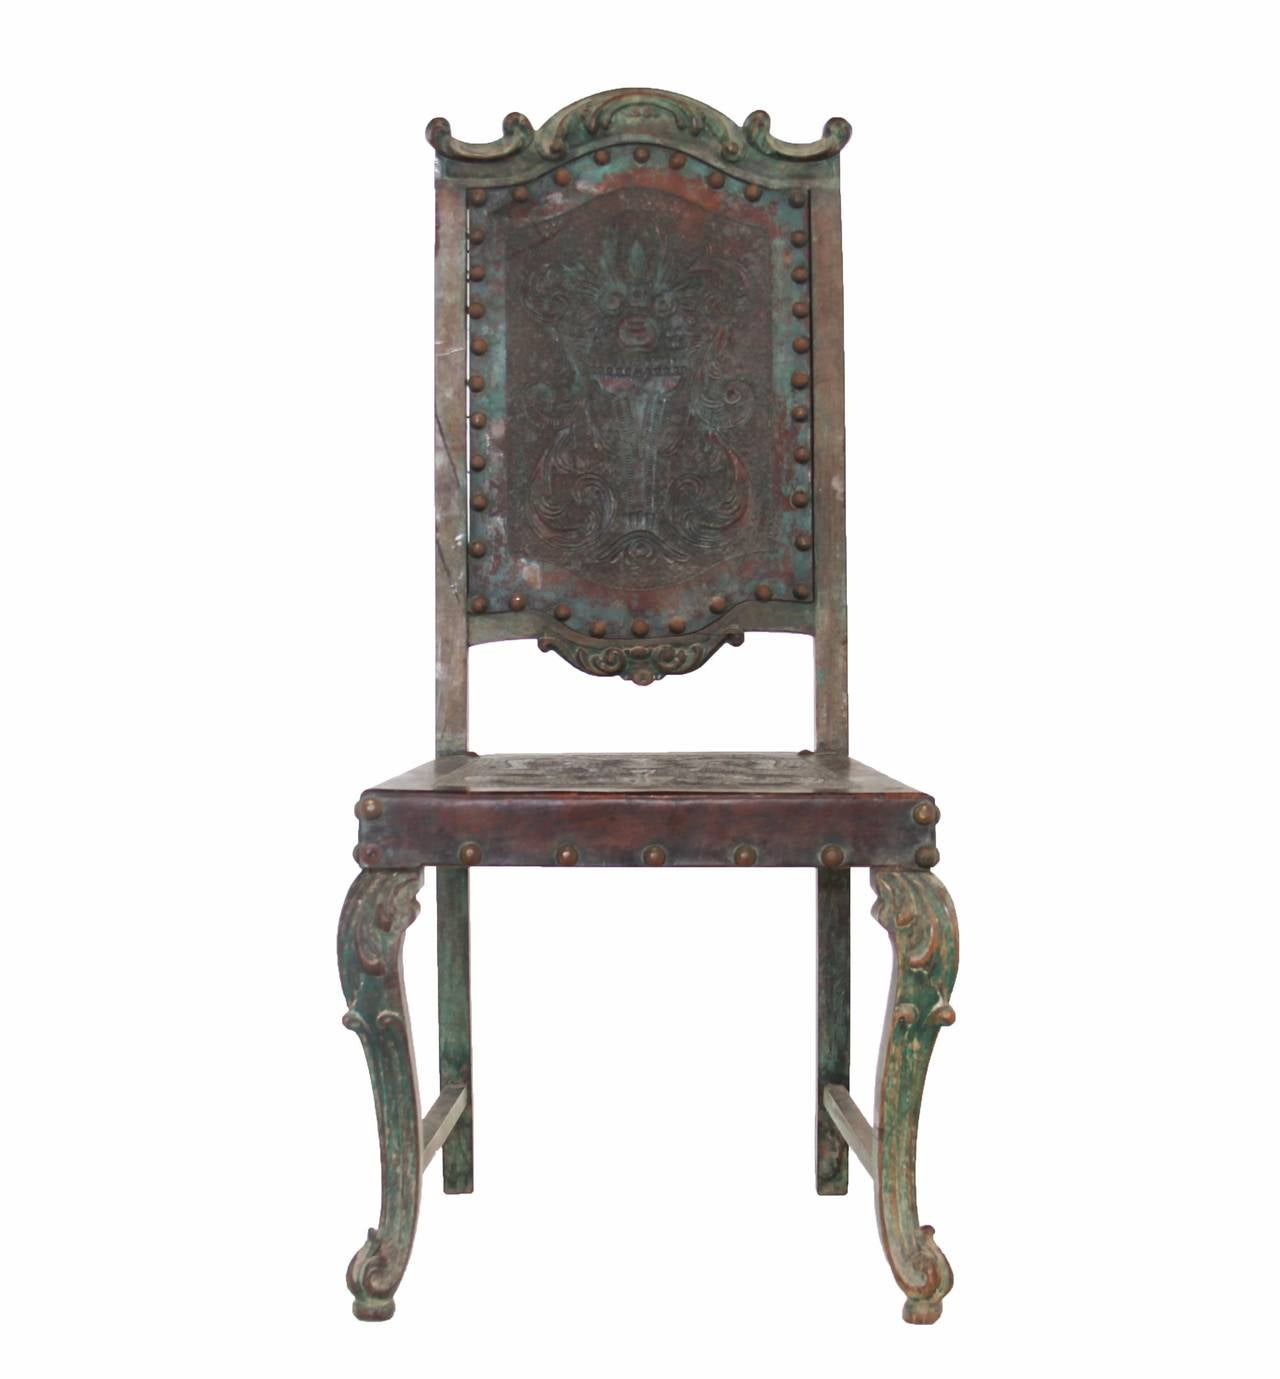 Rustic Vintage Gothic Revival Leather Embossed Side Chair